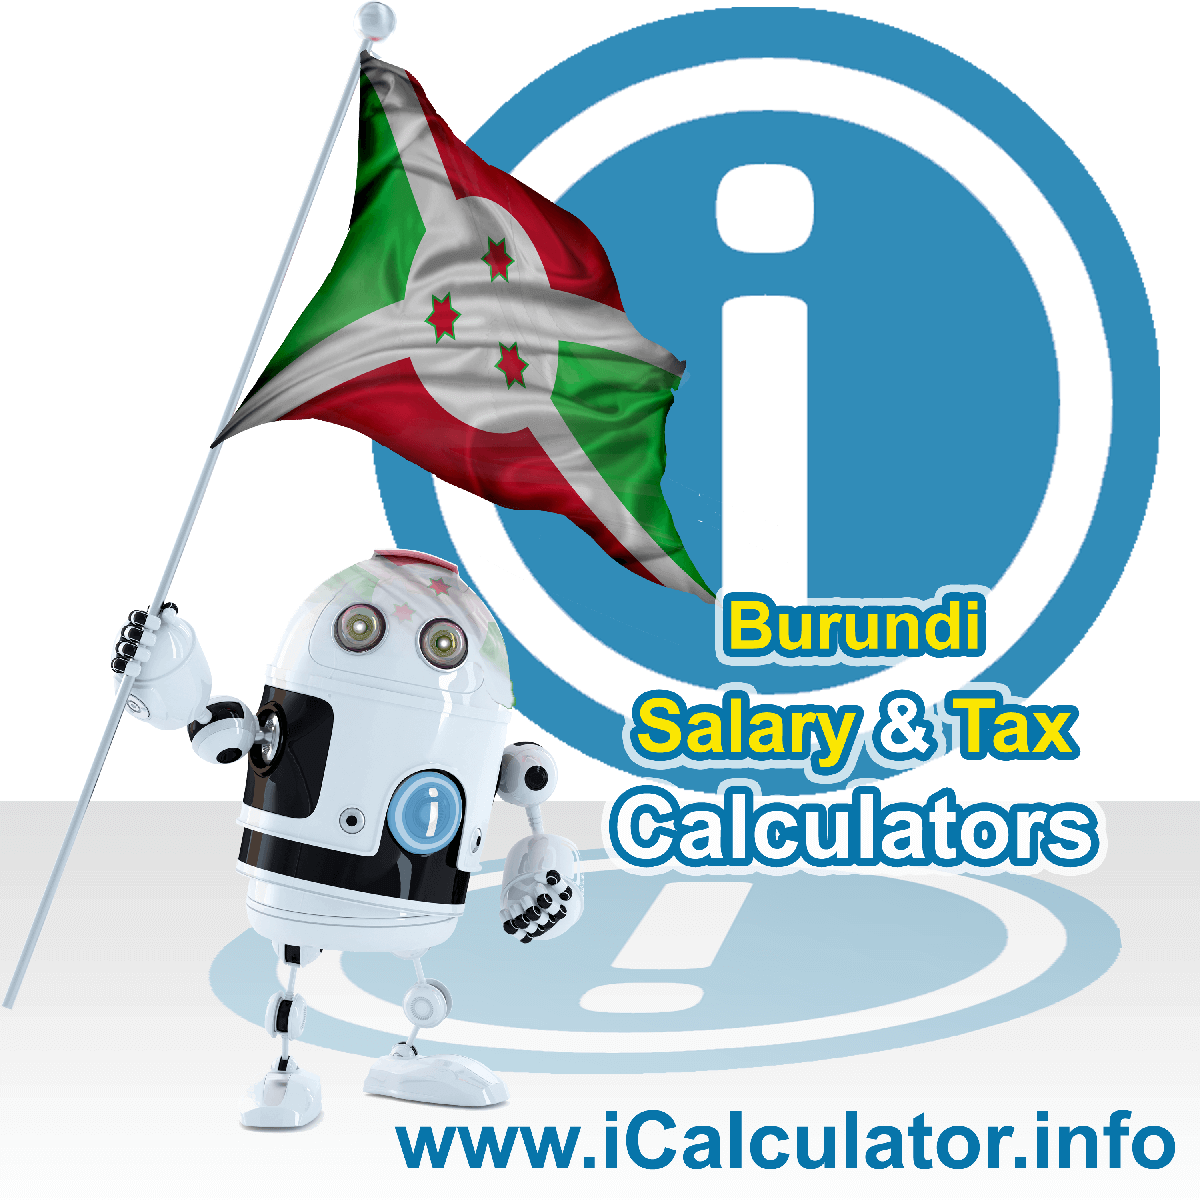 Burundi Tax Calculator. This image shows the Burundi flag and information relating to the tax formula for the Burundi Salary Calculator